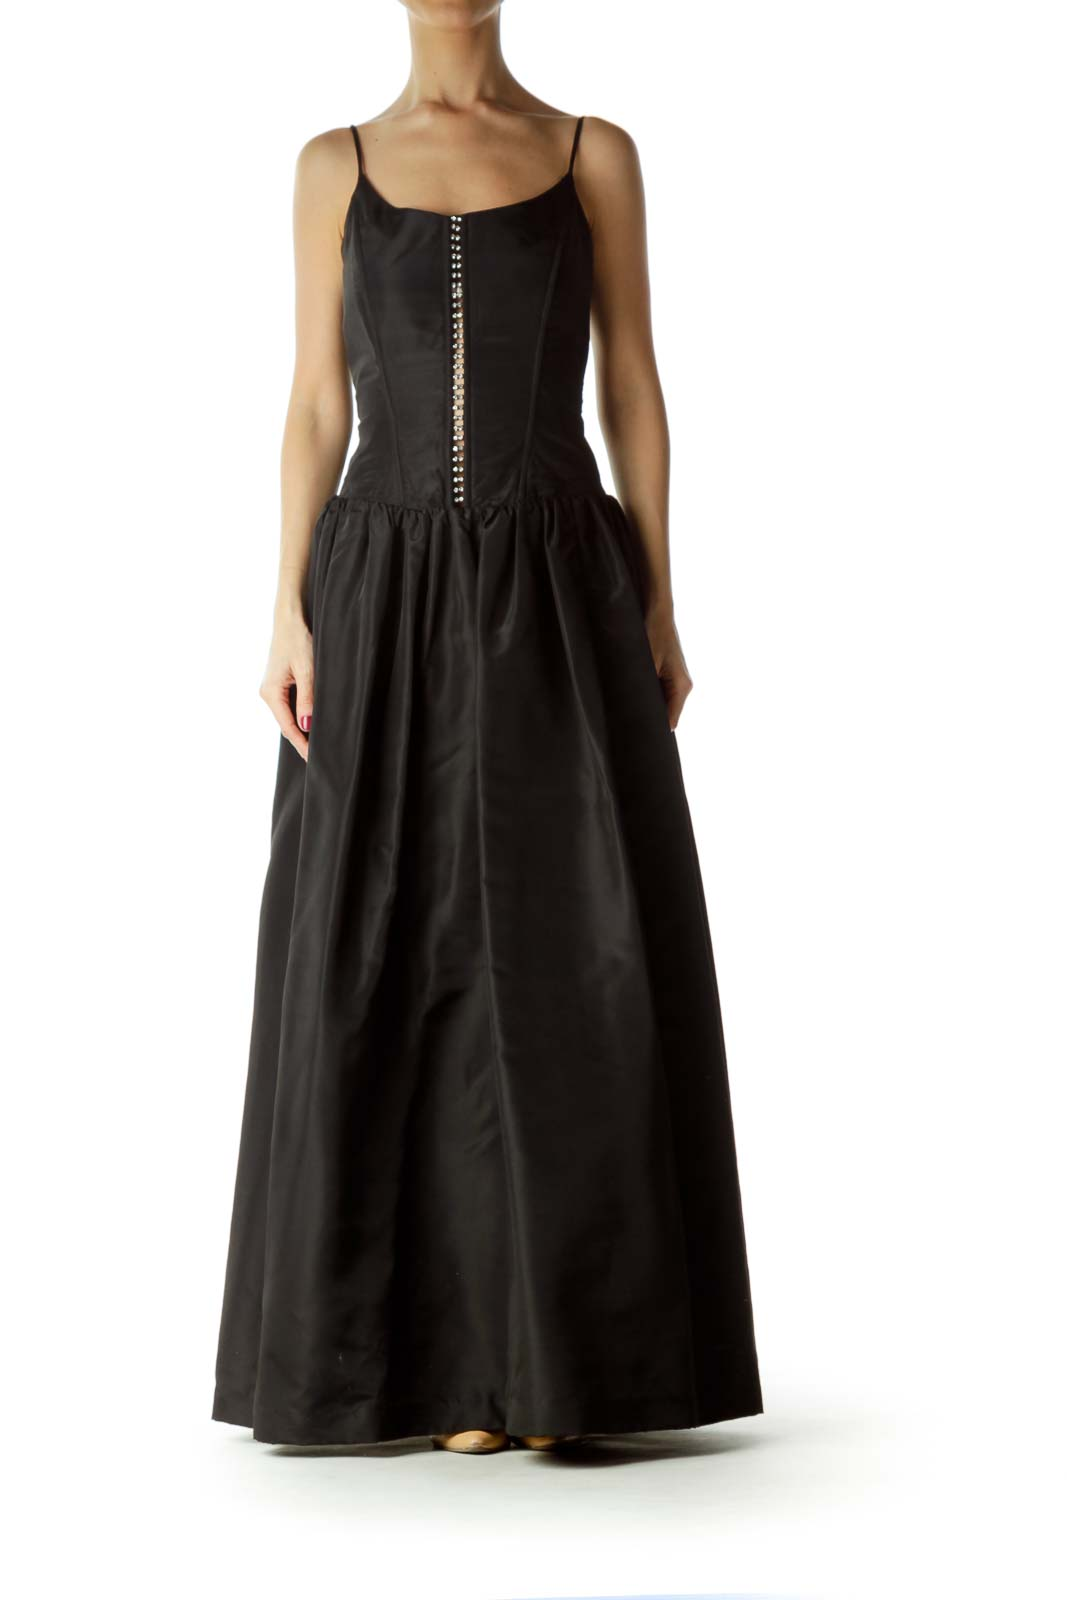 Black Spaghetti Strap Ball Gown